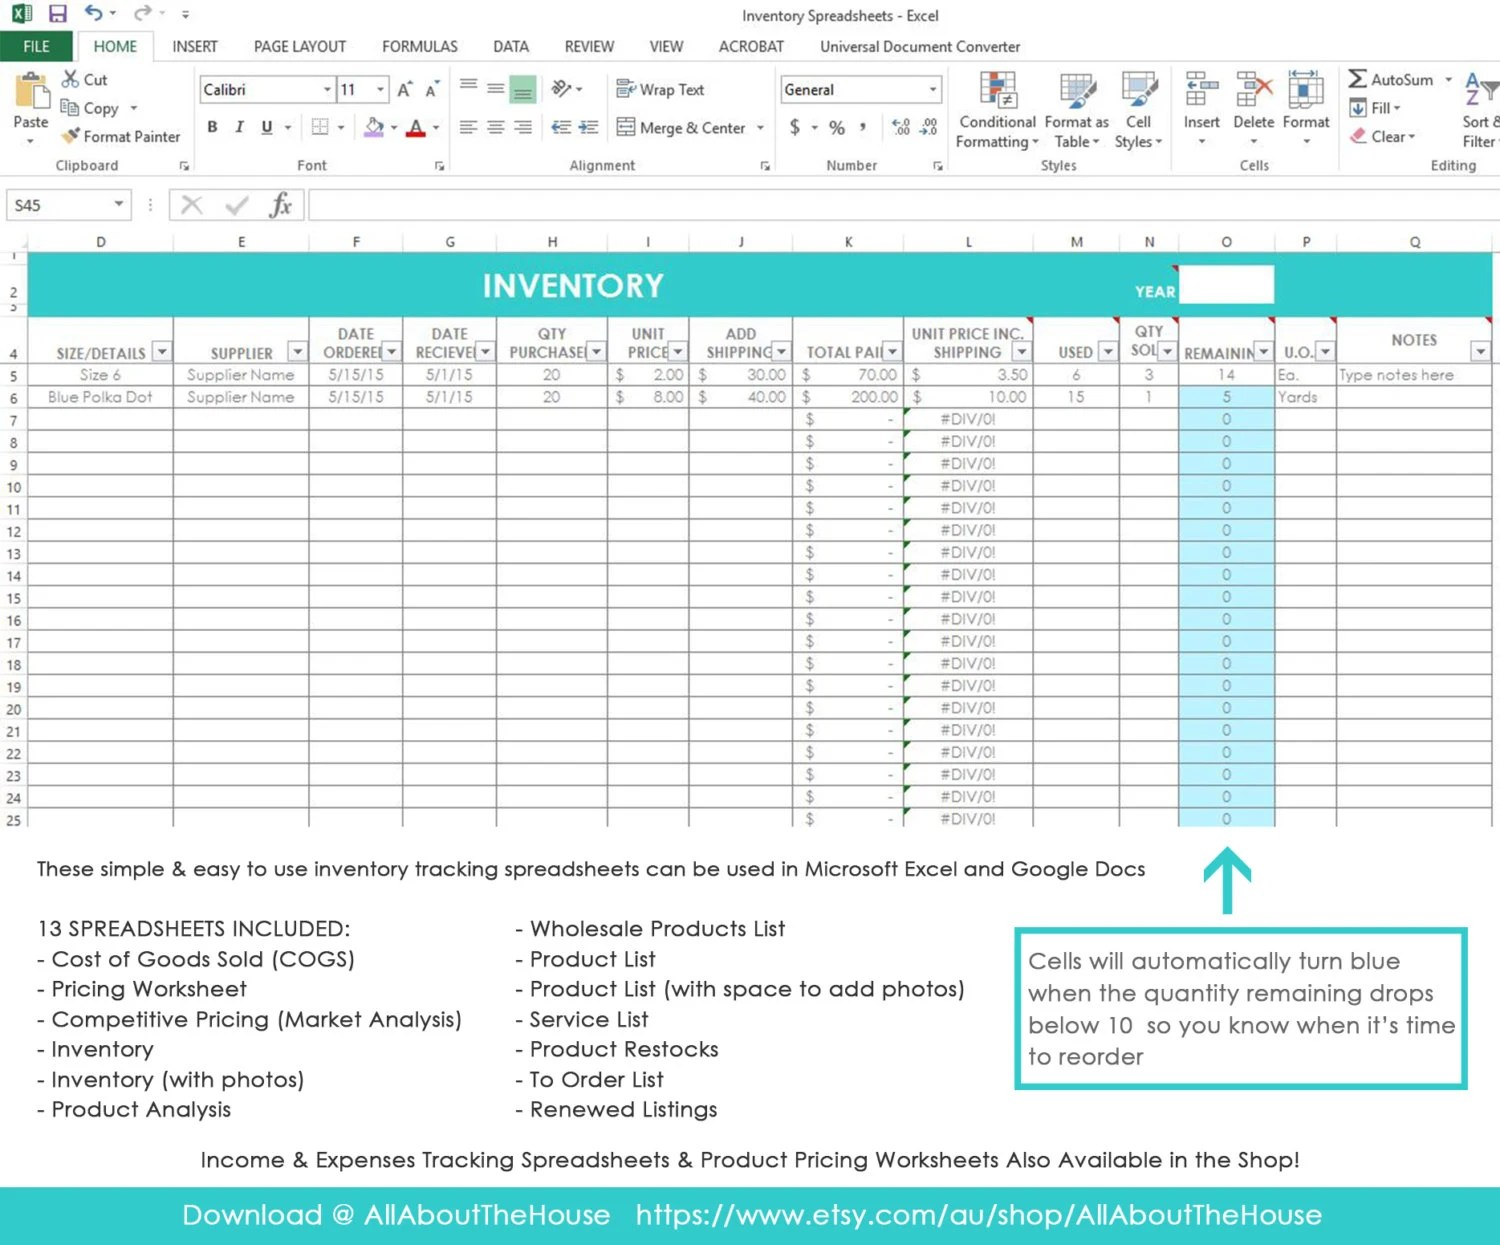 Inventory Spreadsheet Etsy Seller Tool Shop Management Supplies Materials Cost Of Goods Sold